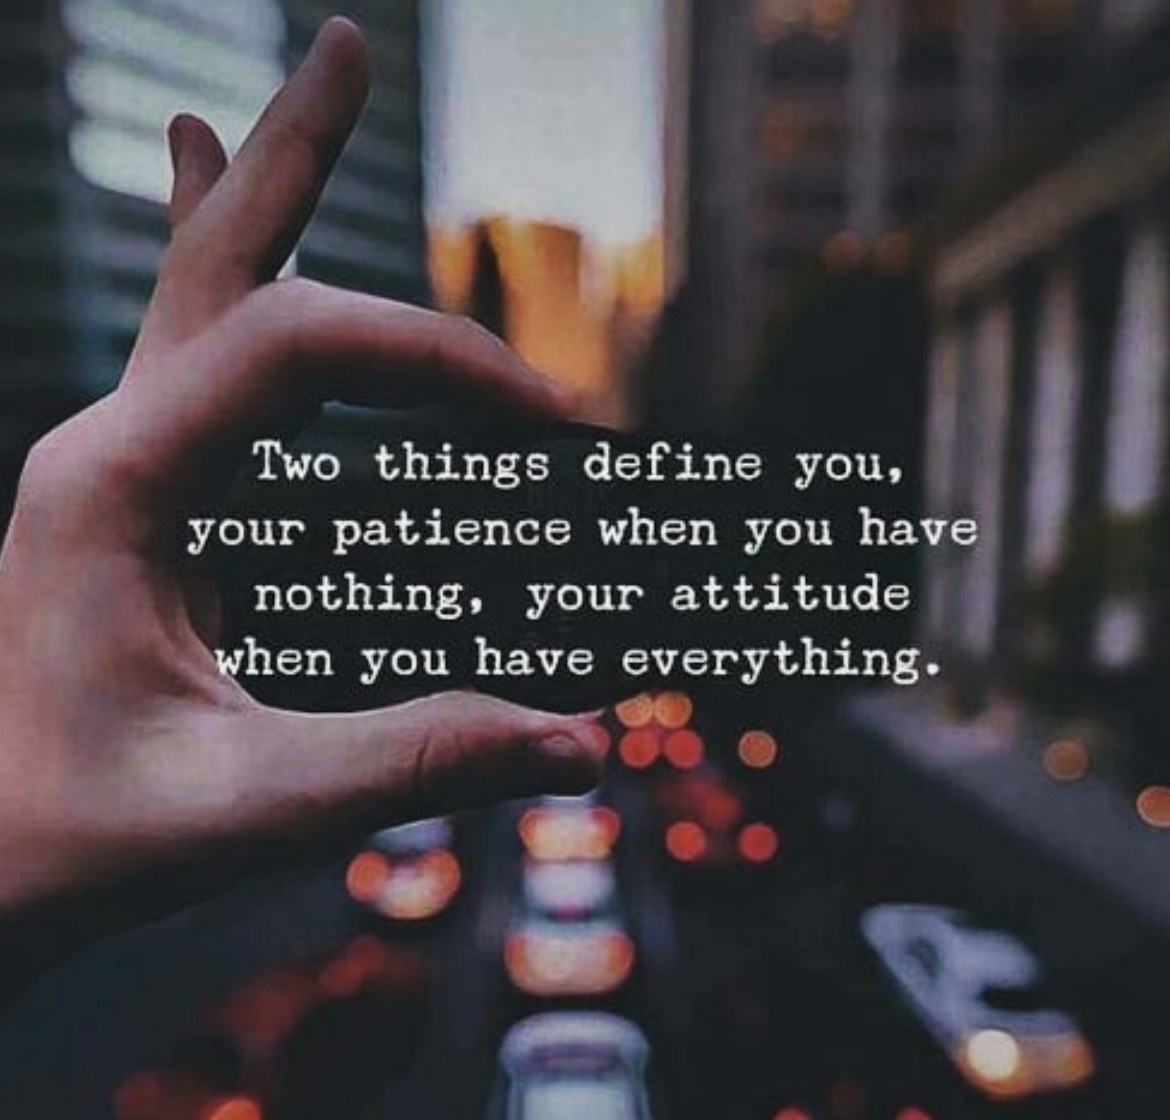 [Image] Two things define you. Your patience when you have nothing. Your attitude when you have everything.